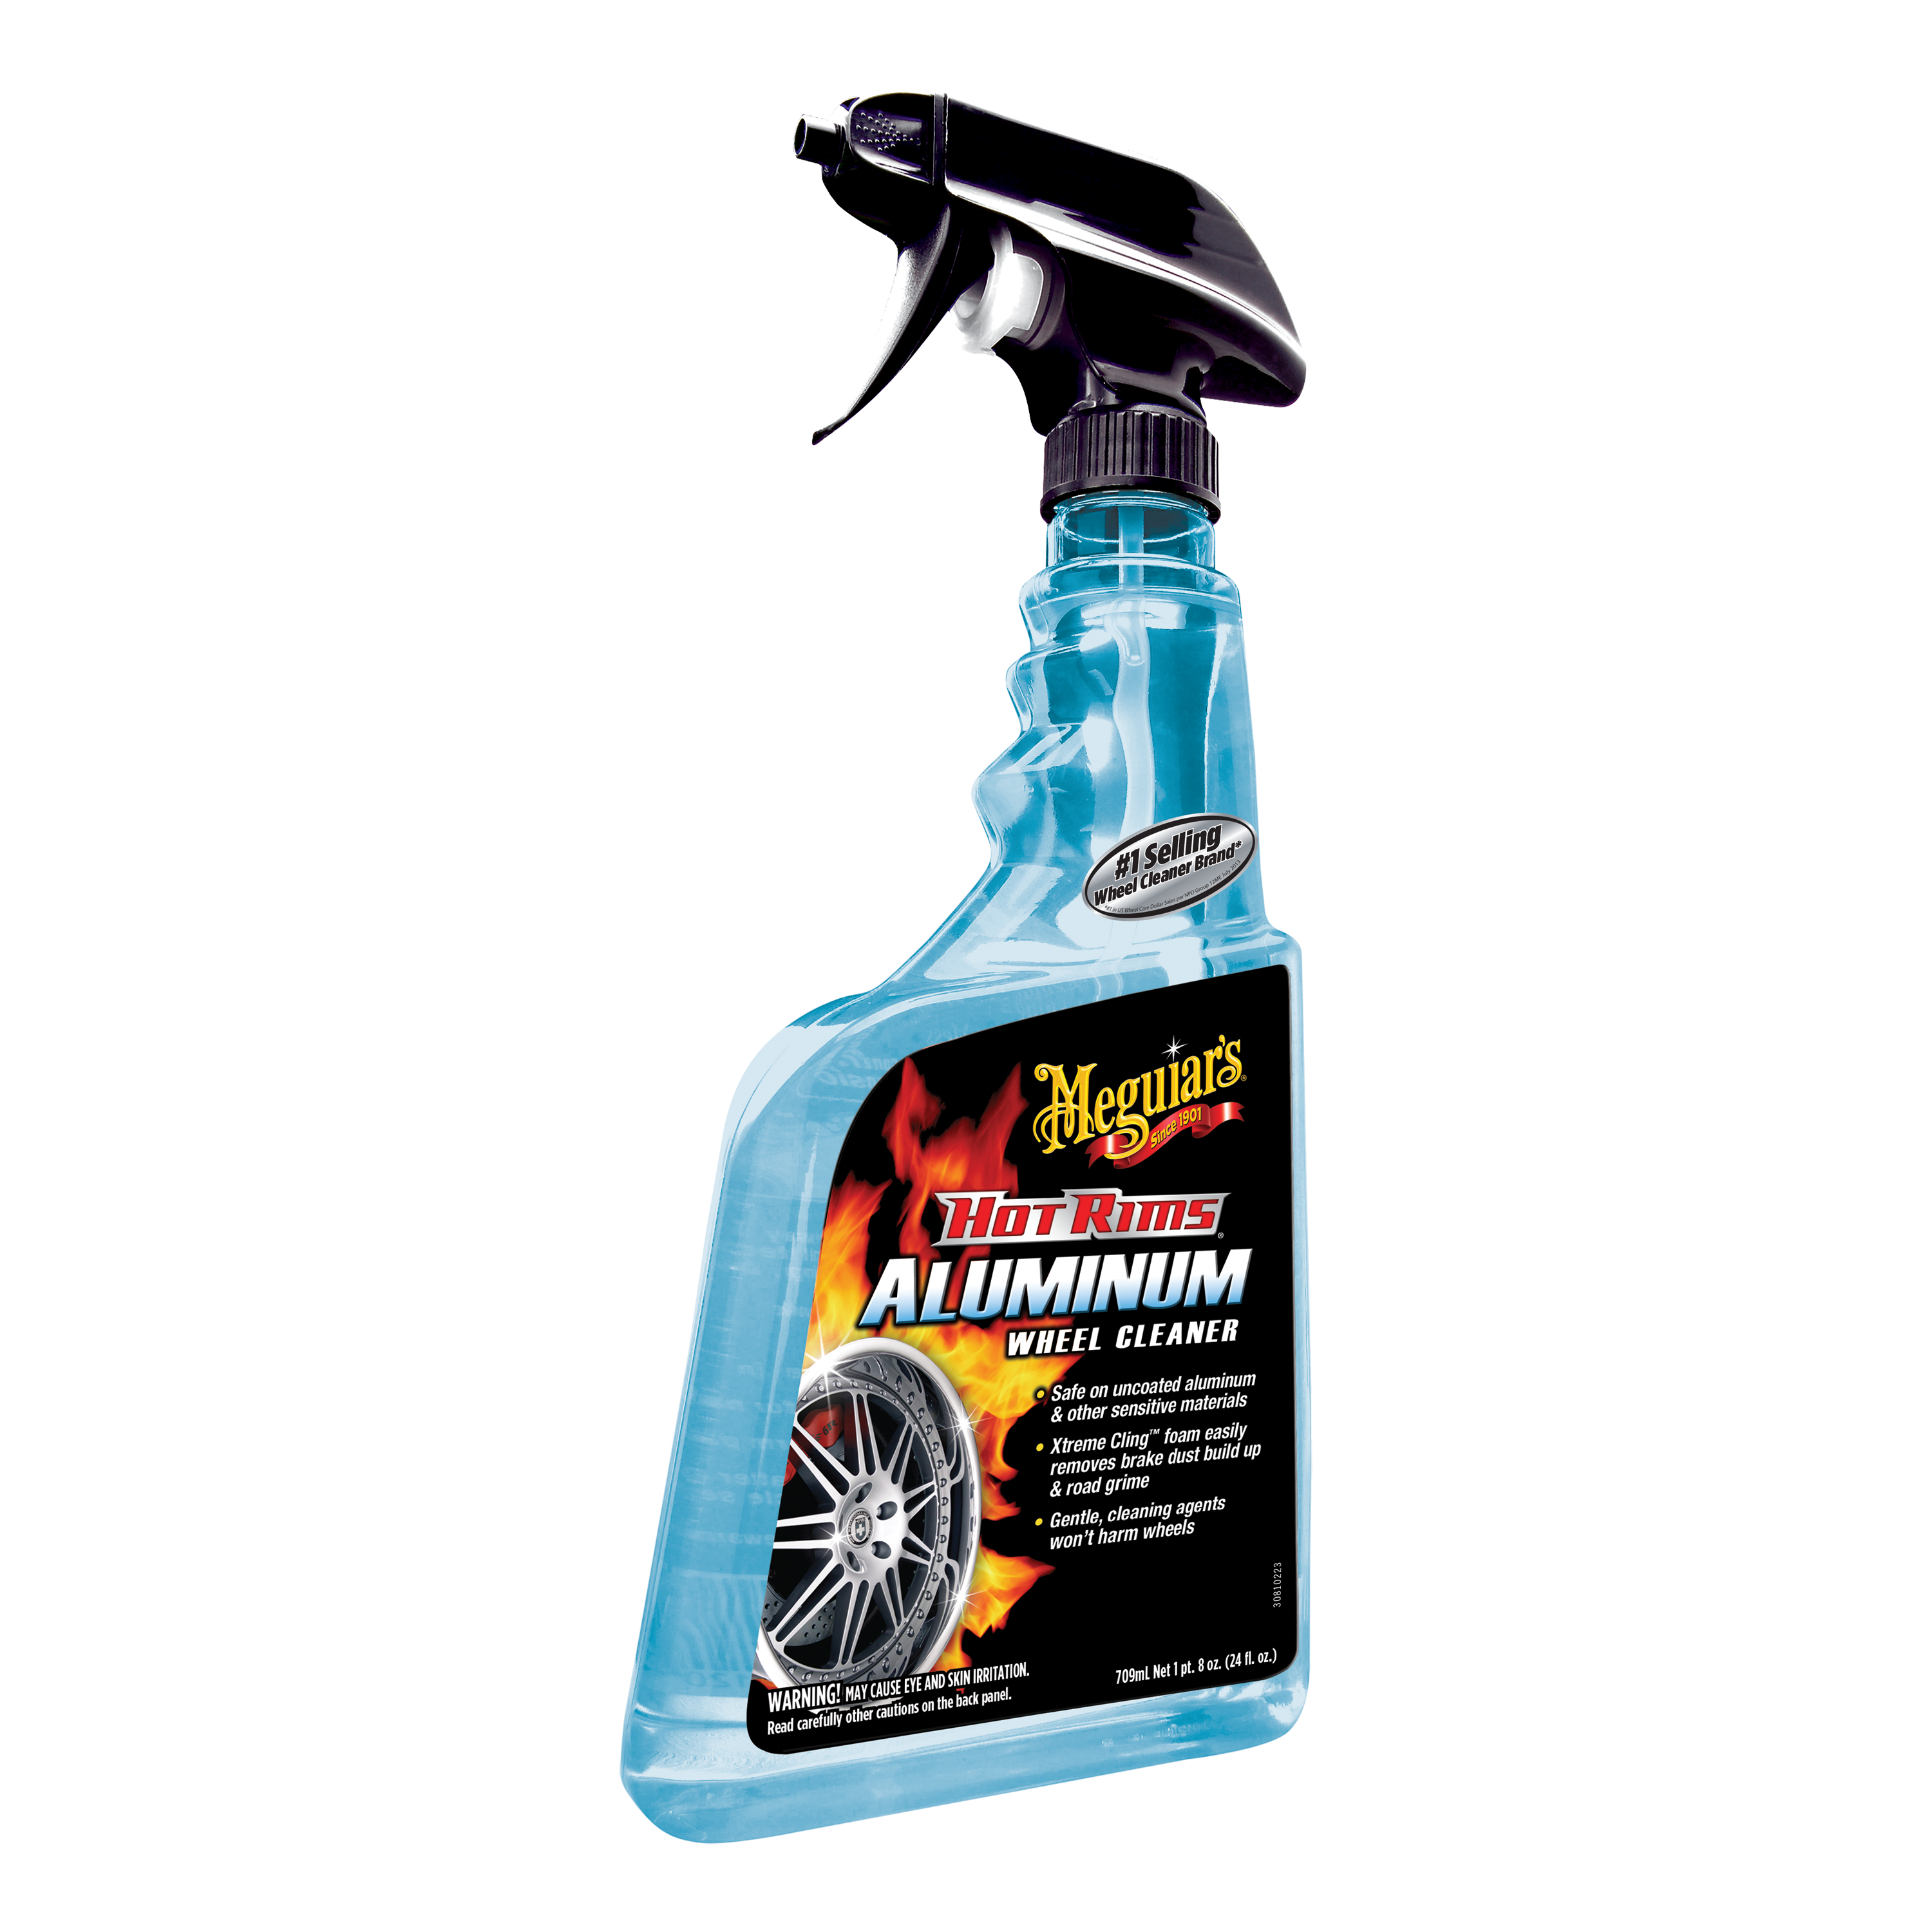 Meguiar S Hot Rims Aluminum Wheel Cleaner G14324 24 Oz Spray Meguiar S